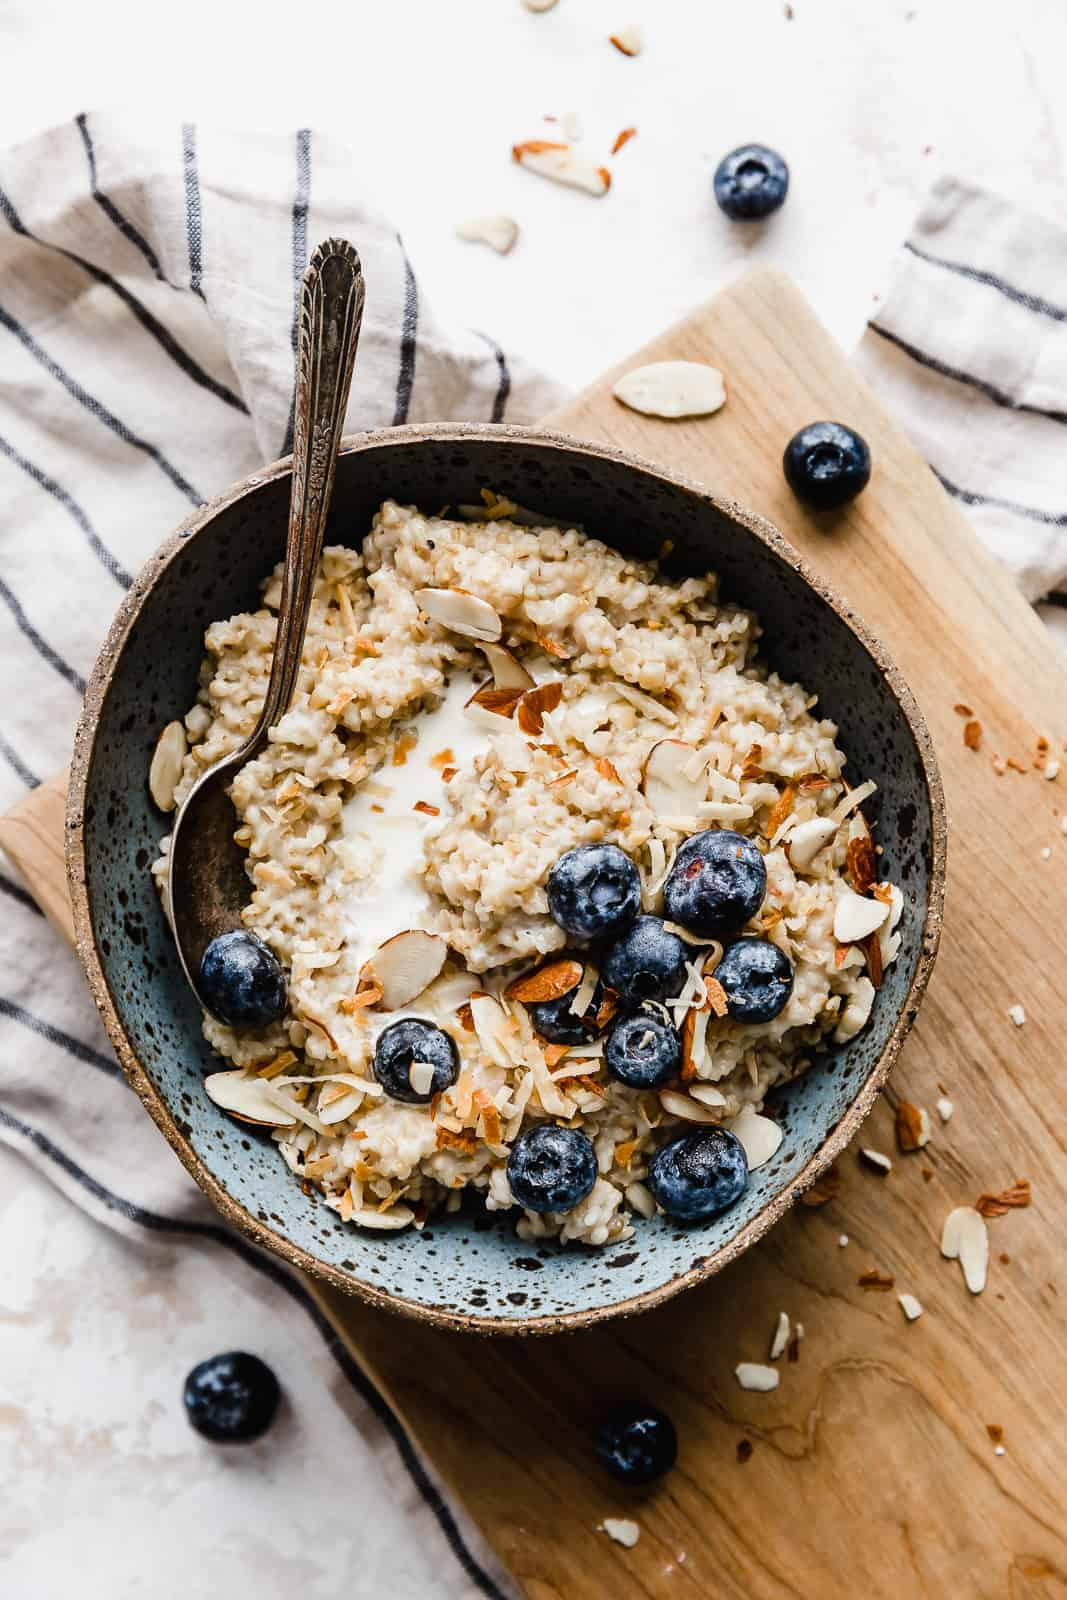 A bowl of steel cut oats topped with blueberries, sliced almonds, and milk.